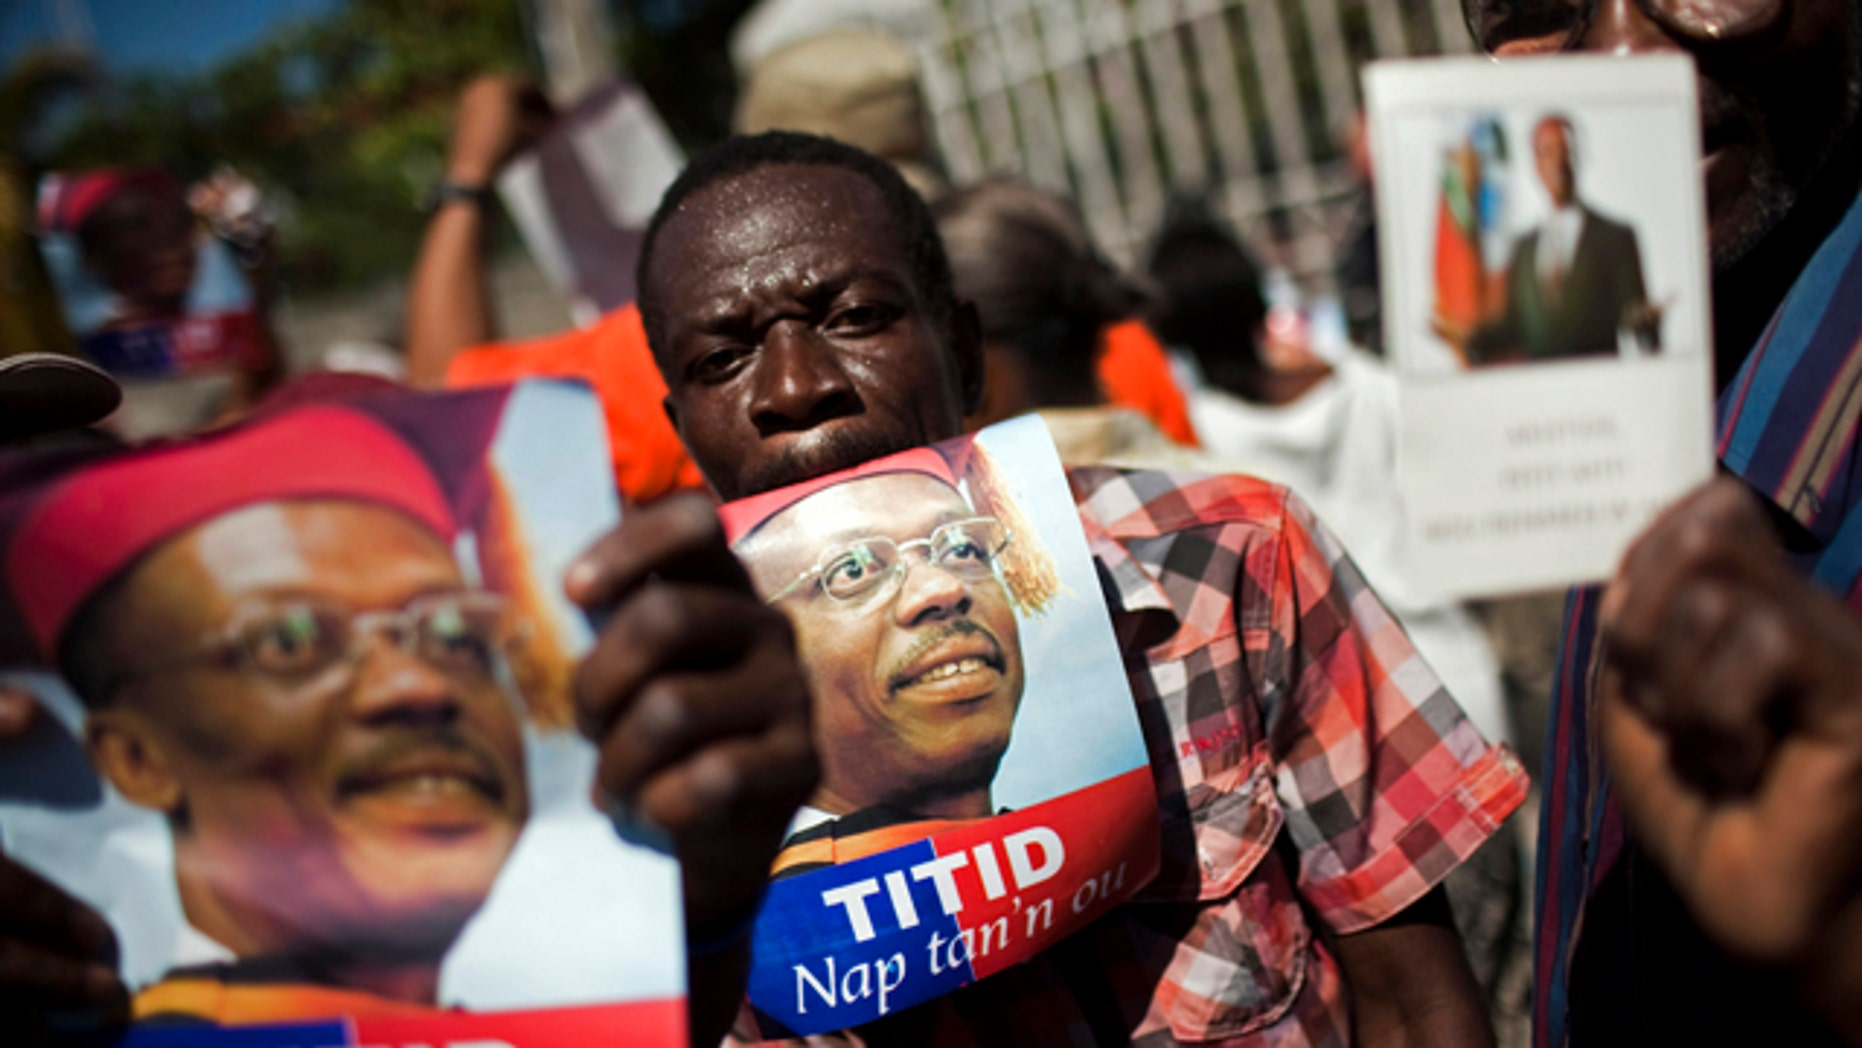 Feb. 2: Demonstrators hold pictures of Haiti's ousted President Jean Bertrand Aristide during a protest demanding his return in Port-au-Prince, Haiti. Aristide is a former priest and liberation theologist who rose to become Haiti's first democratically elected president. He was overthrown in a coup, restored to power, then ousted again in 2004. (AP)